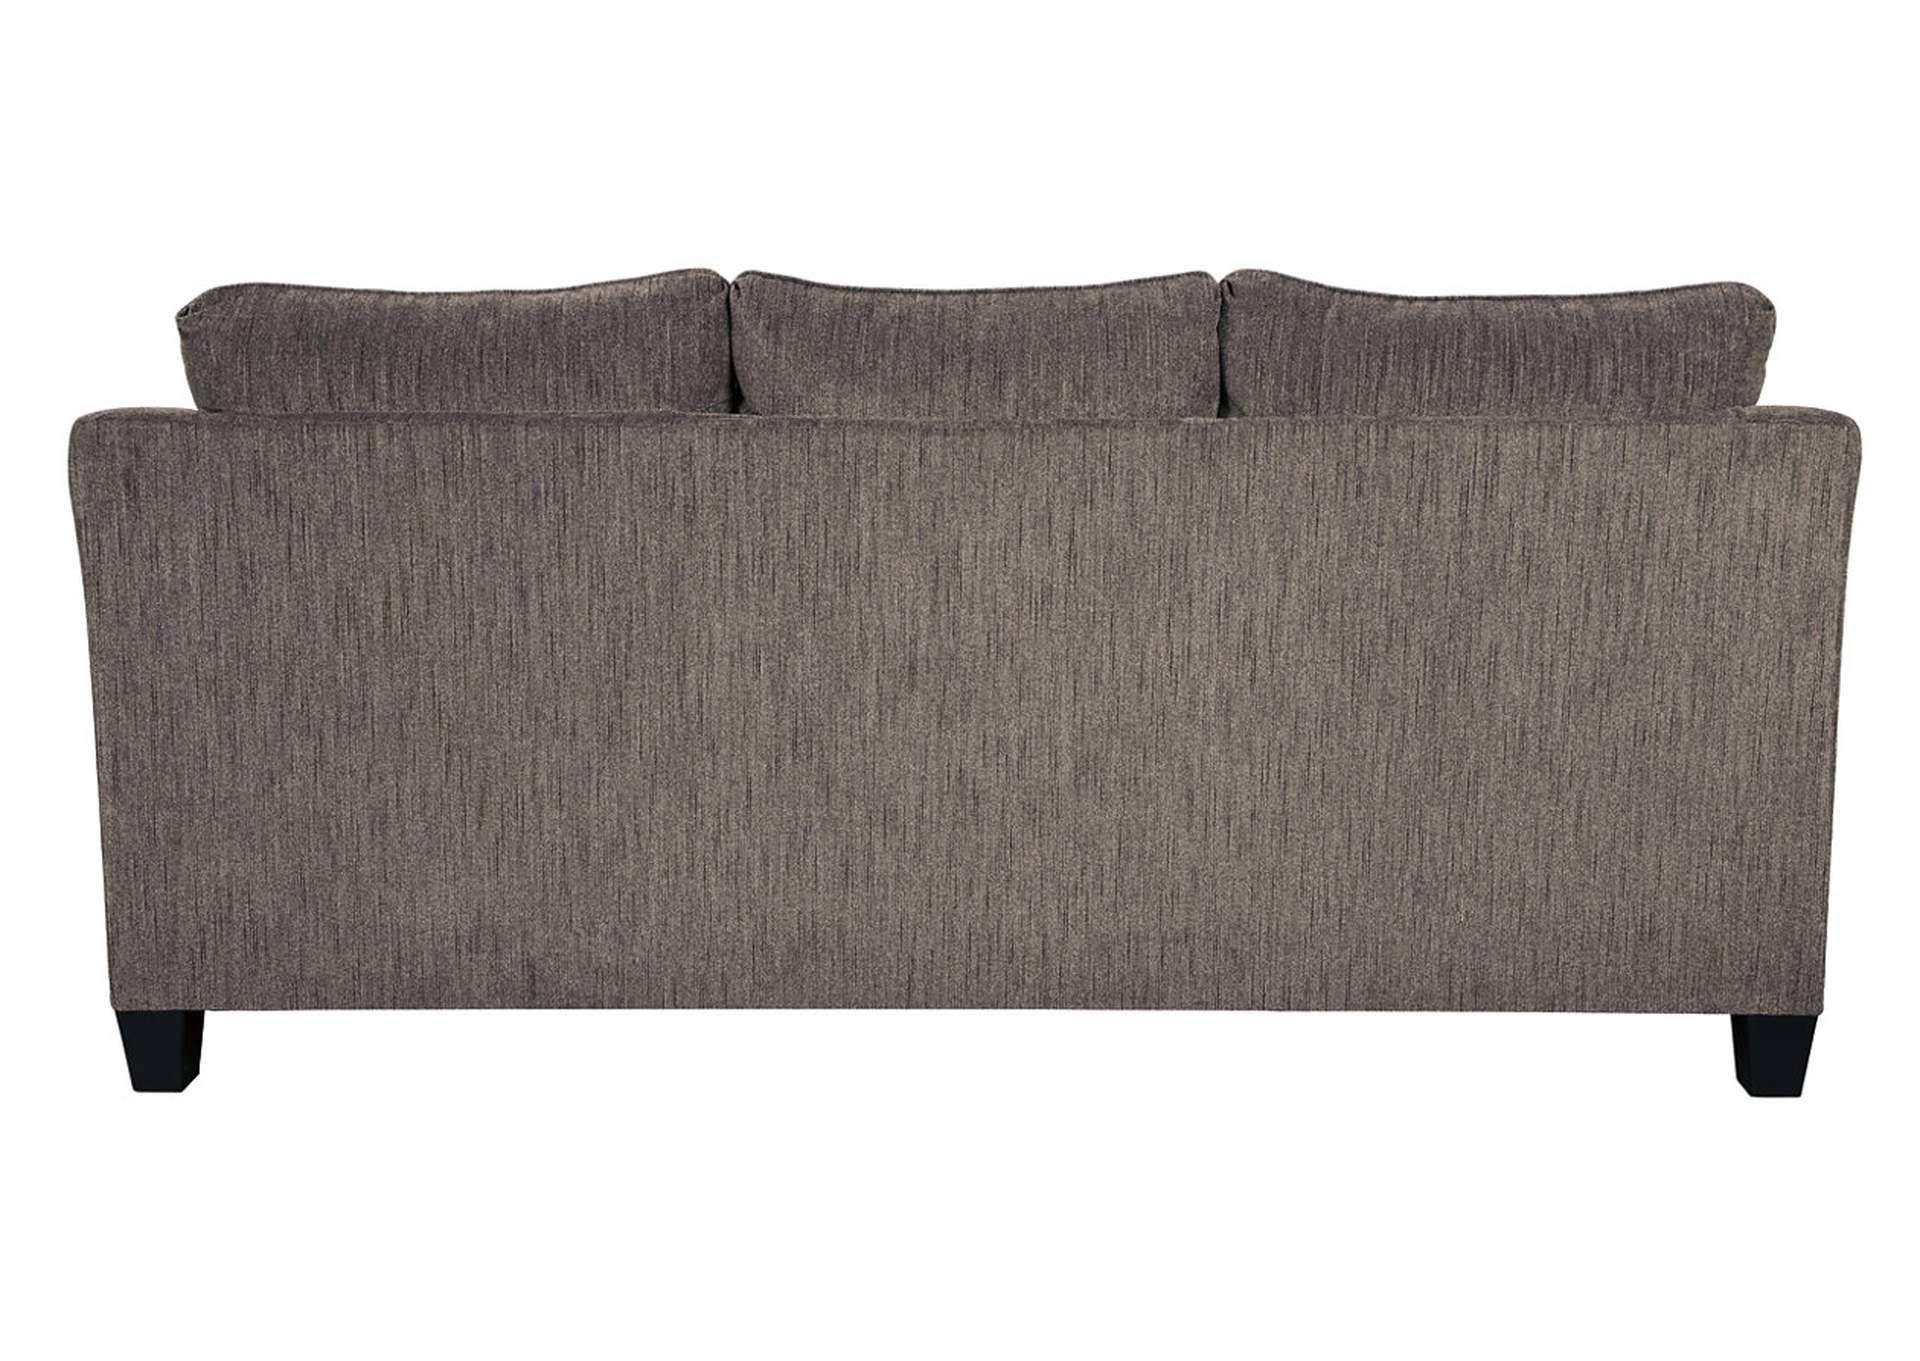 Nemoli Slate Sofa,Signature Design By Ashley